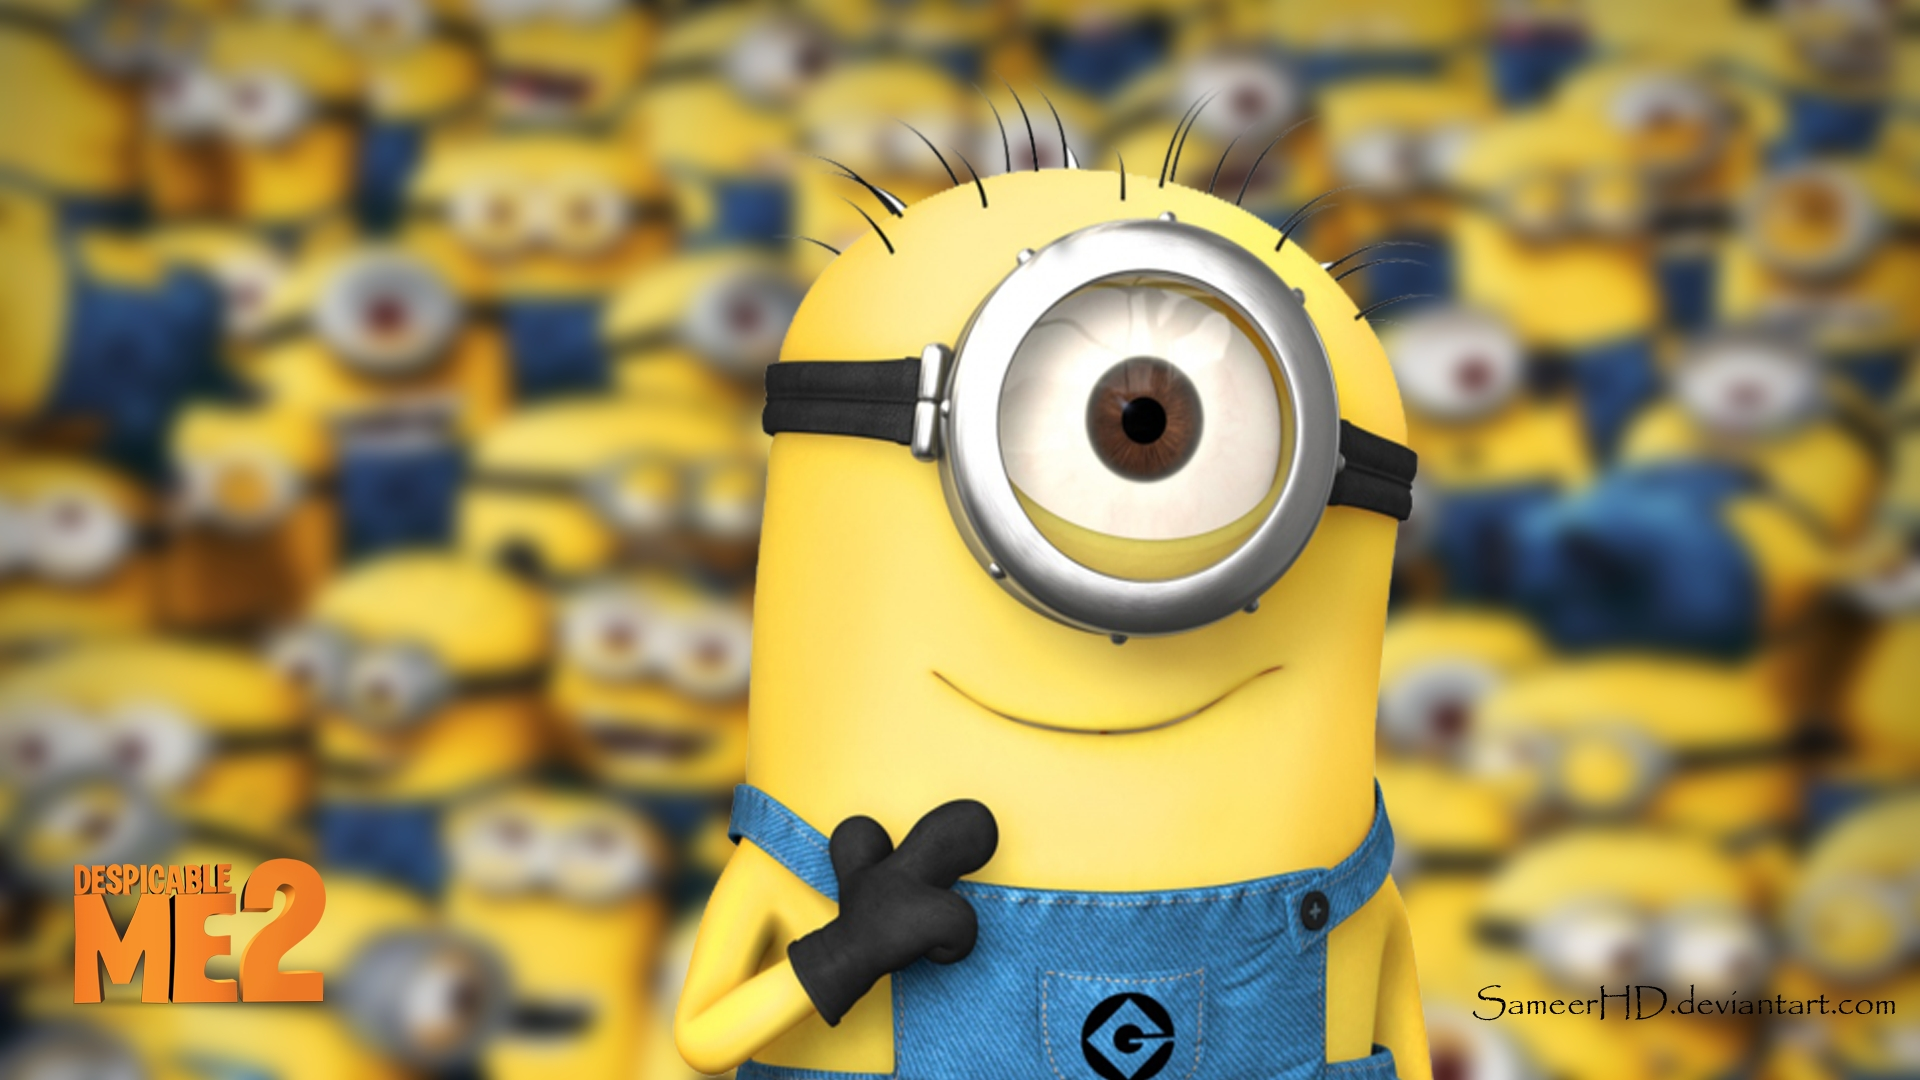 minions despicable me wallpapers desktop backgrounds | hd wallpapers